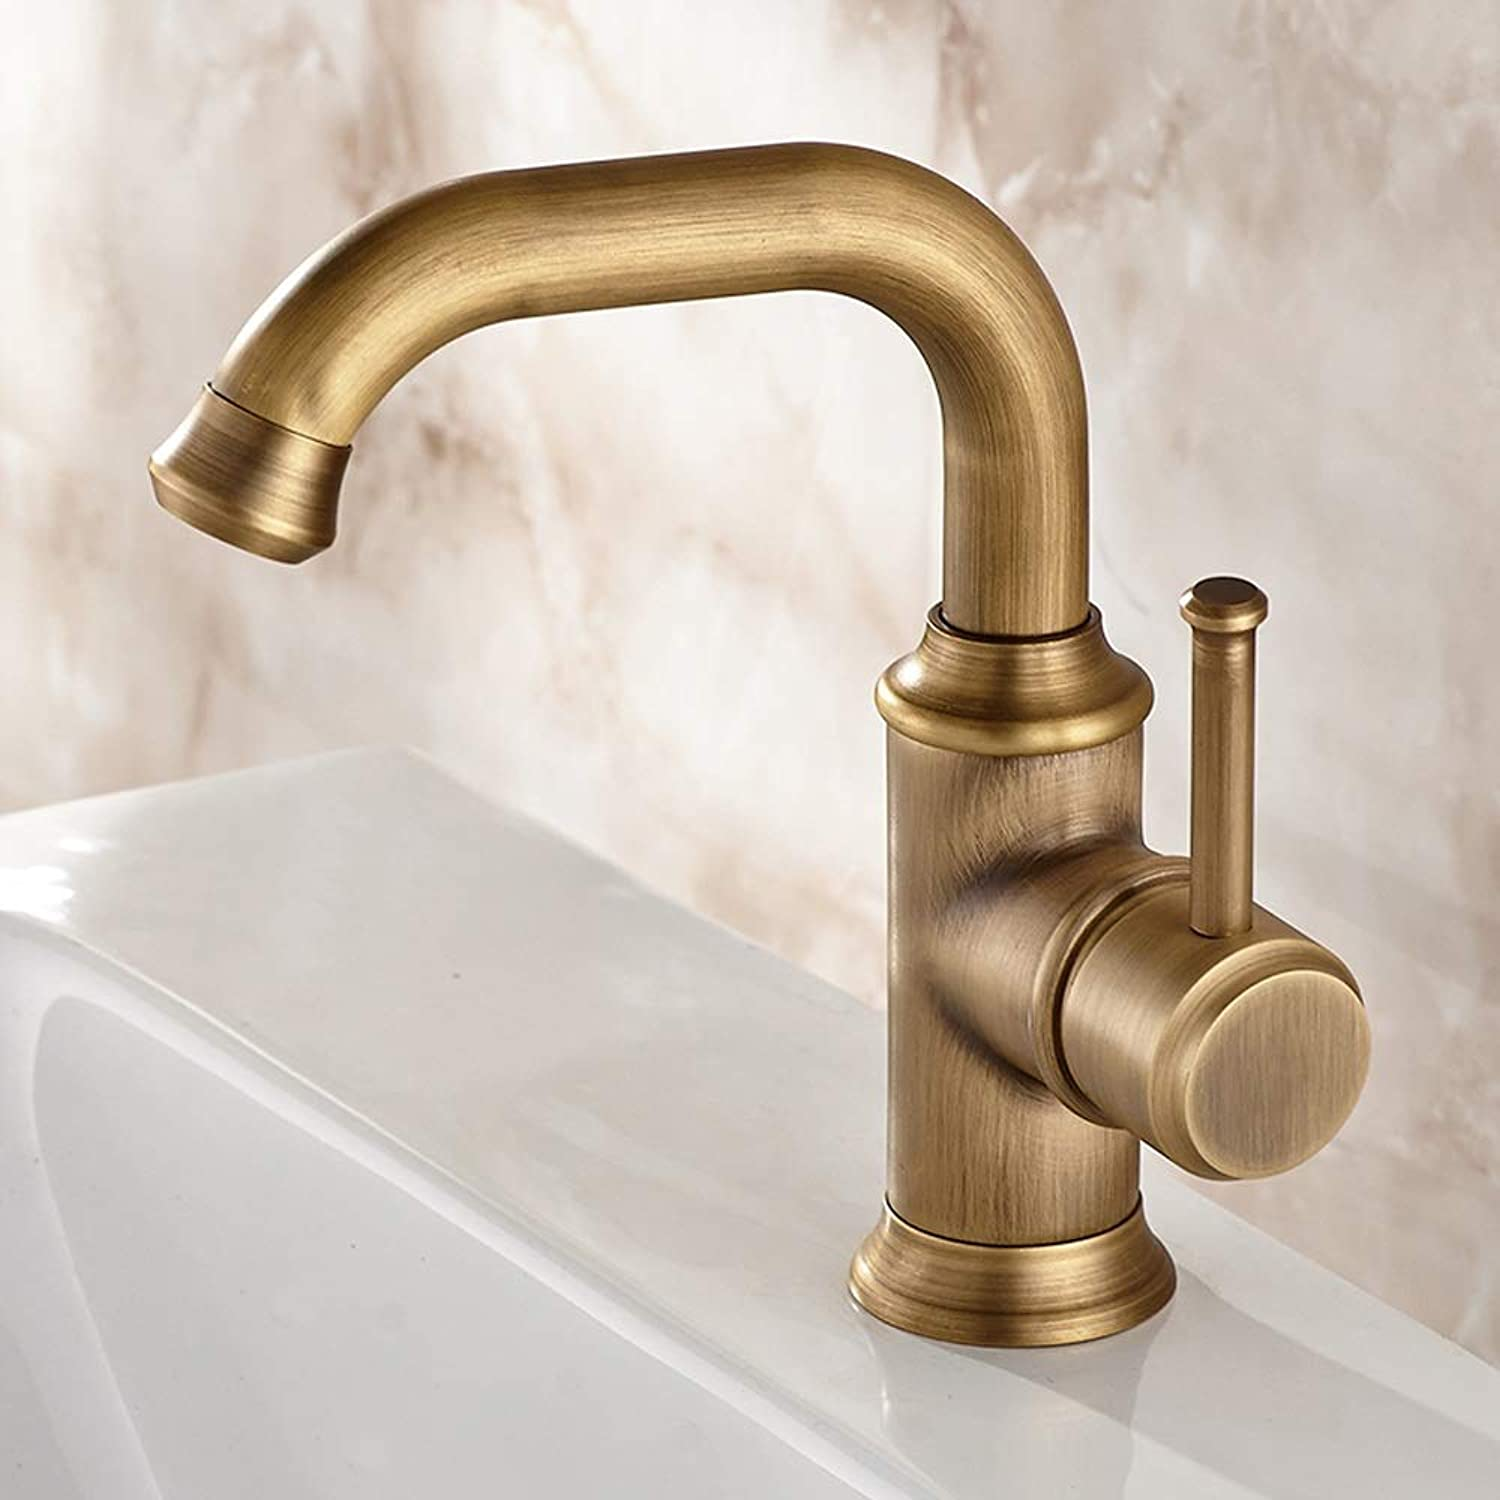 AXWT Antique color Basin Faucets All Bronze Mixed Water Faucet Plumbing High Quality Seated Thicken Material Taps Hotel Clubhouse Basin Water-tap